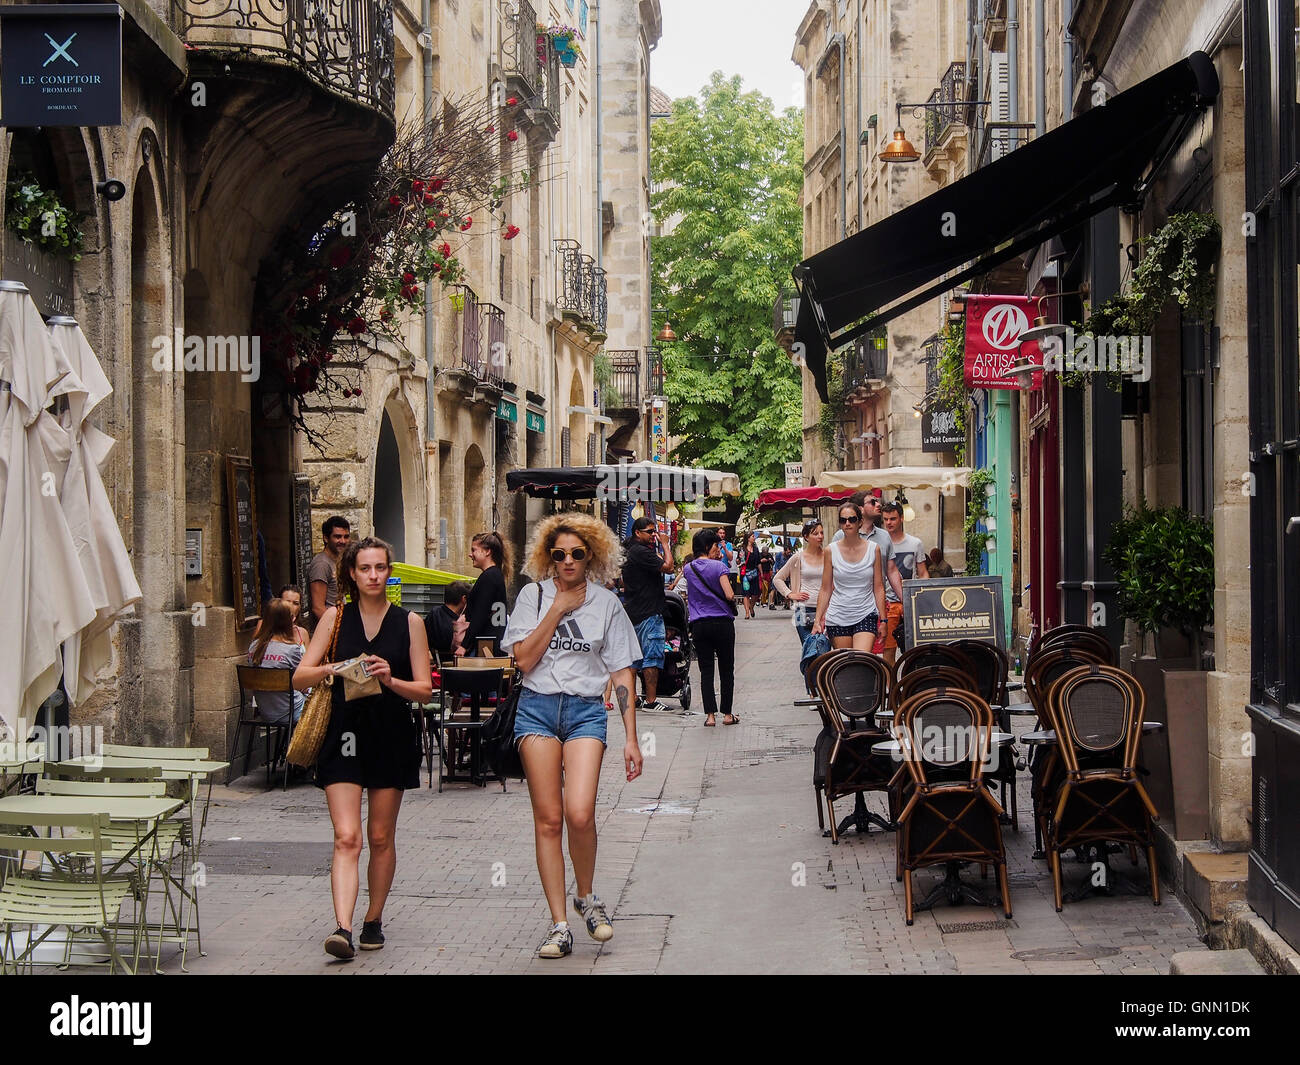 Shopping & Commercial street in the historic center of Bordeaux, Gironde. Aquitaine France Europe - Stock Image